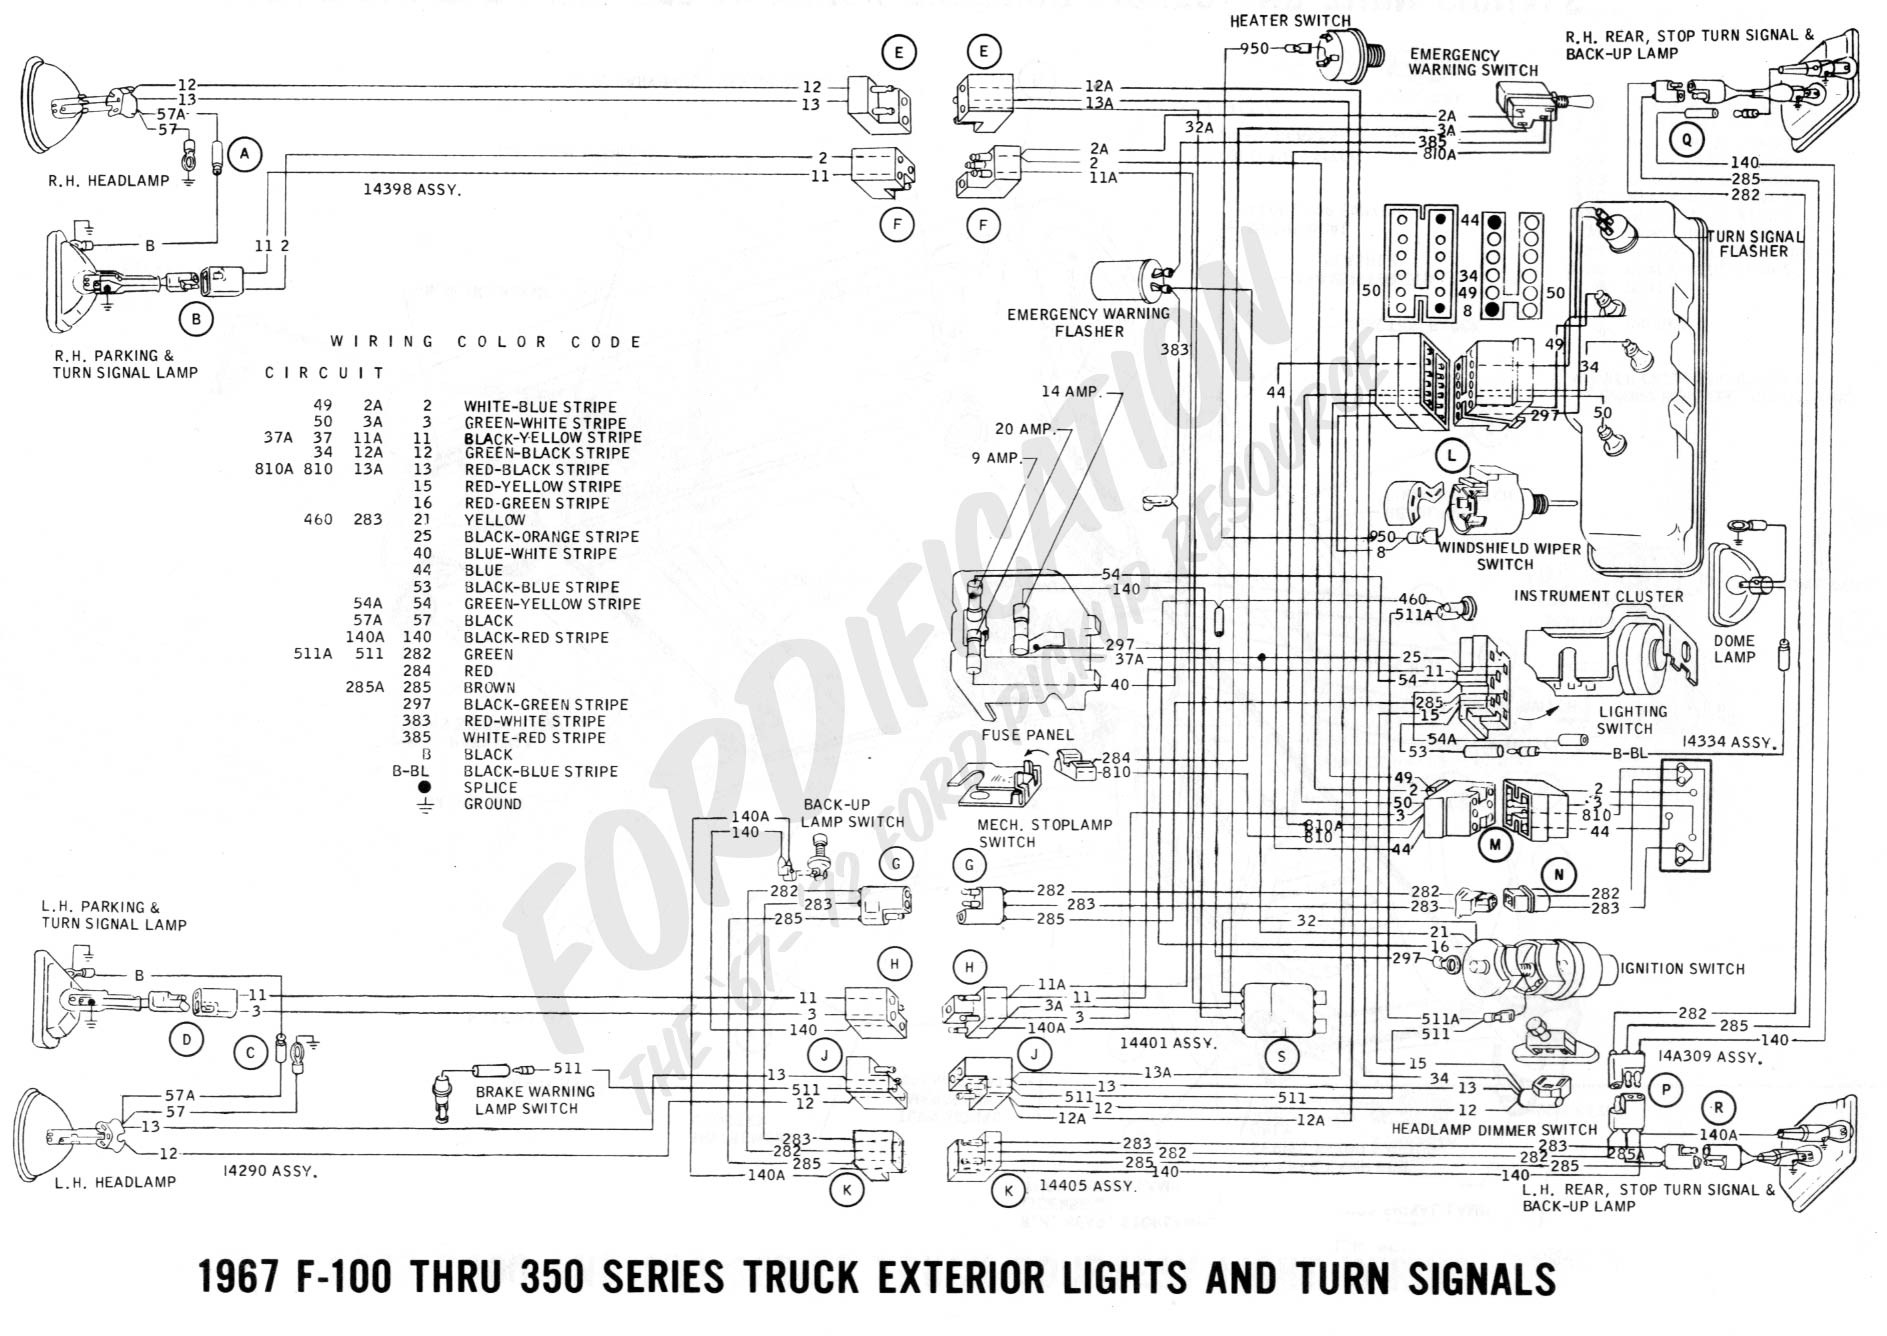 2001 ford Focus Wiring Diagram ford Truck Technical Drawings and Schematics Section H Wiring Of 2001 ford Focus Wiring Diagram